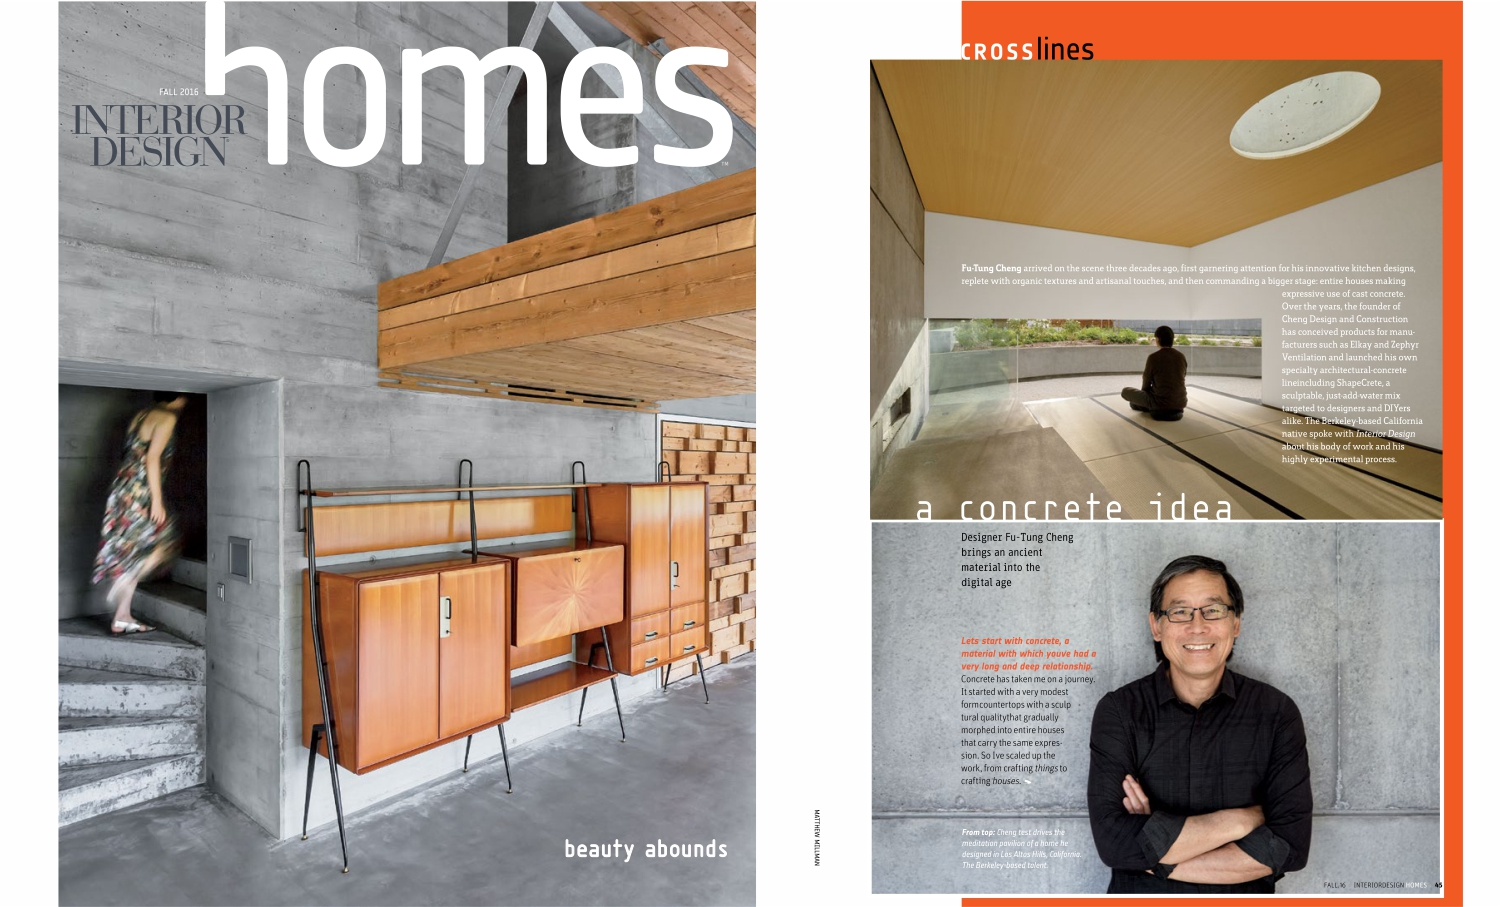 Interior Design Homes Issue A Print And Online Magazine Showcasing High End Is Counterpart Of Sister Publication